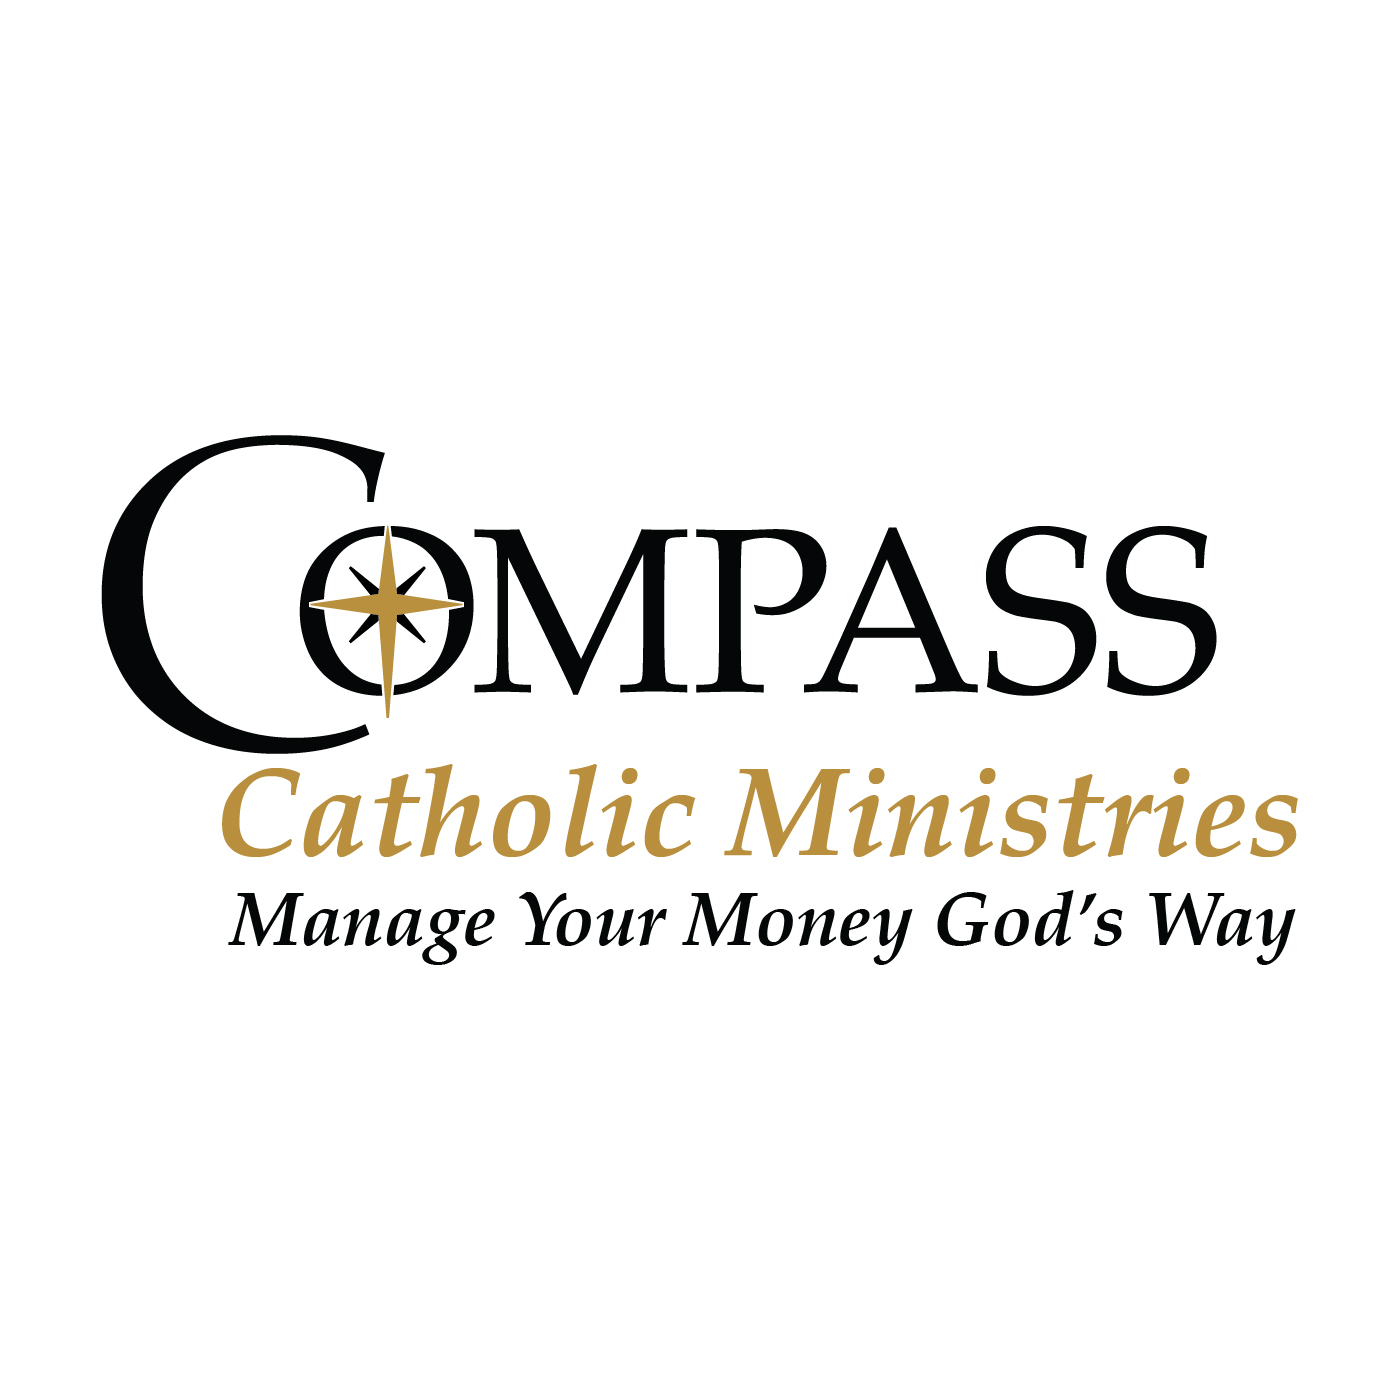 Compass Catholic